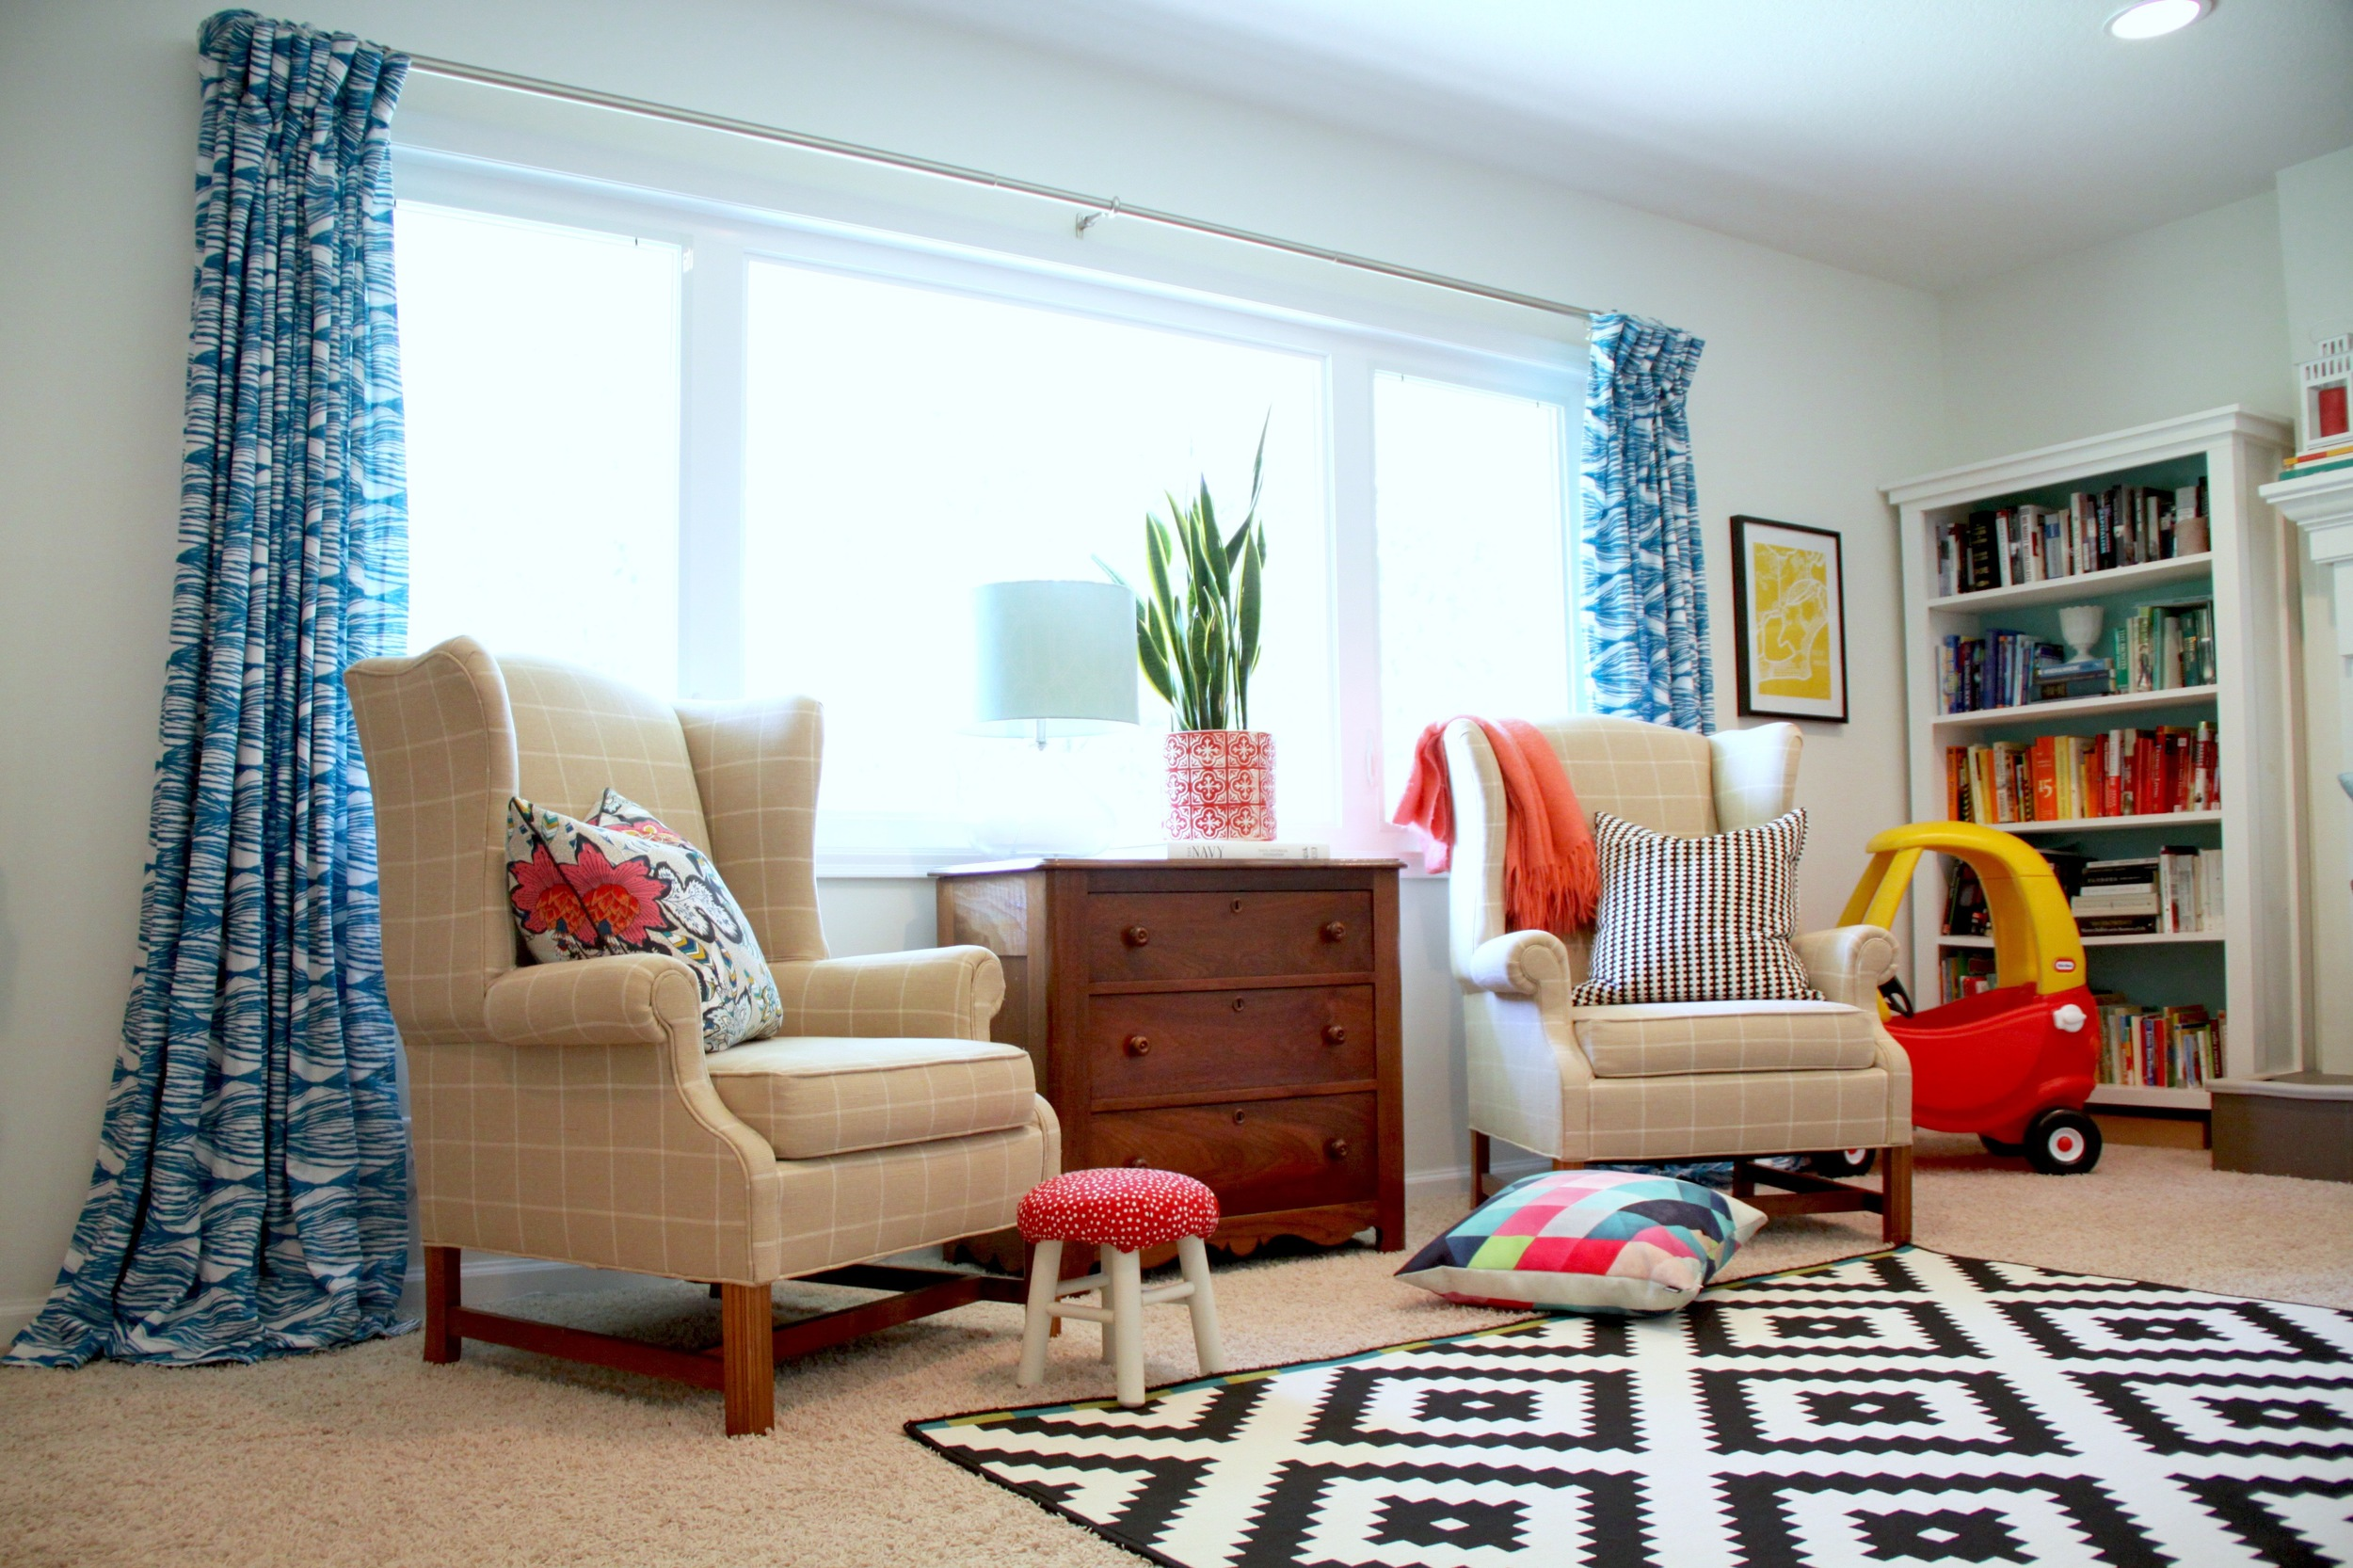 Living Room with DIY Pinch Pleat Curtains and White Walls